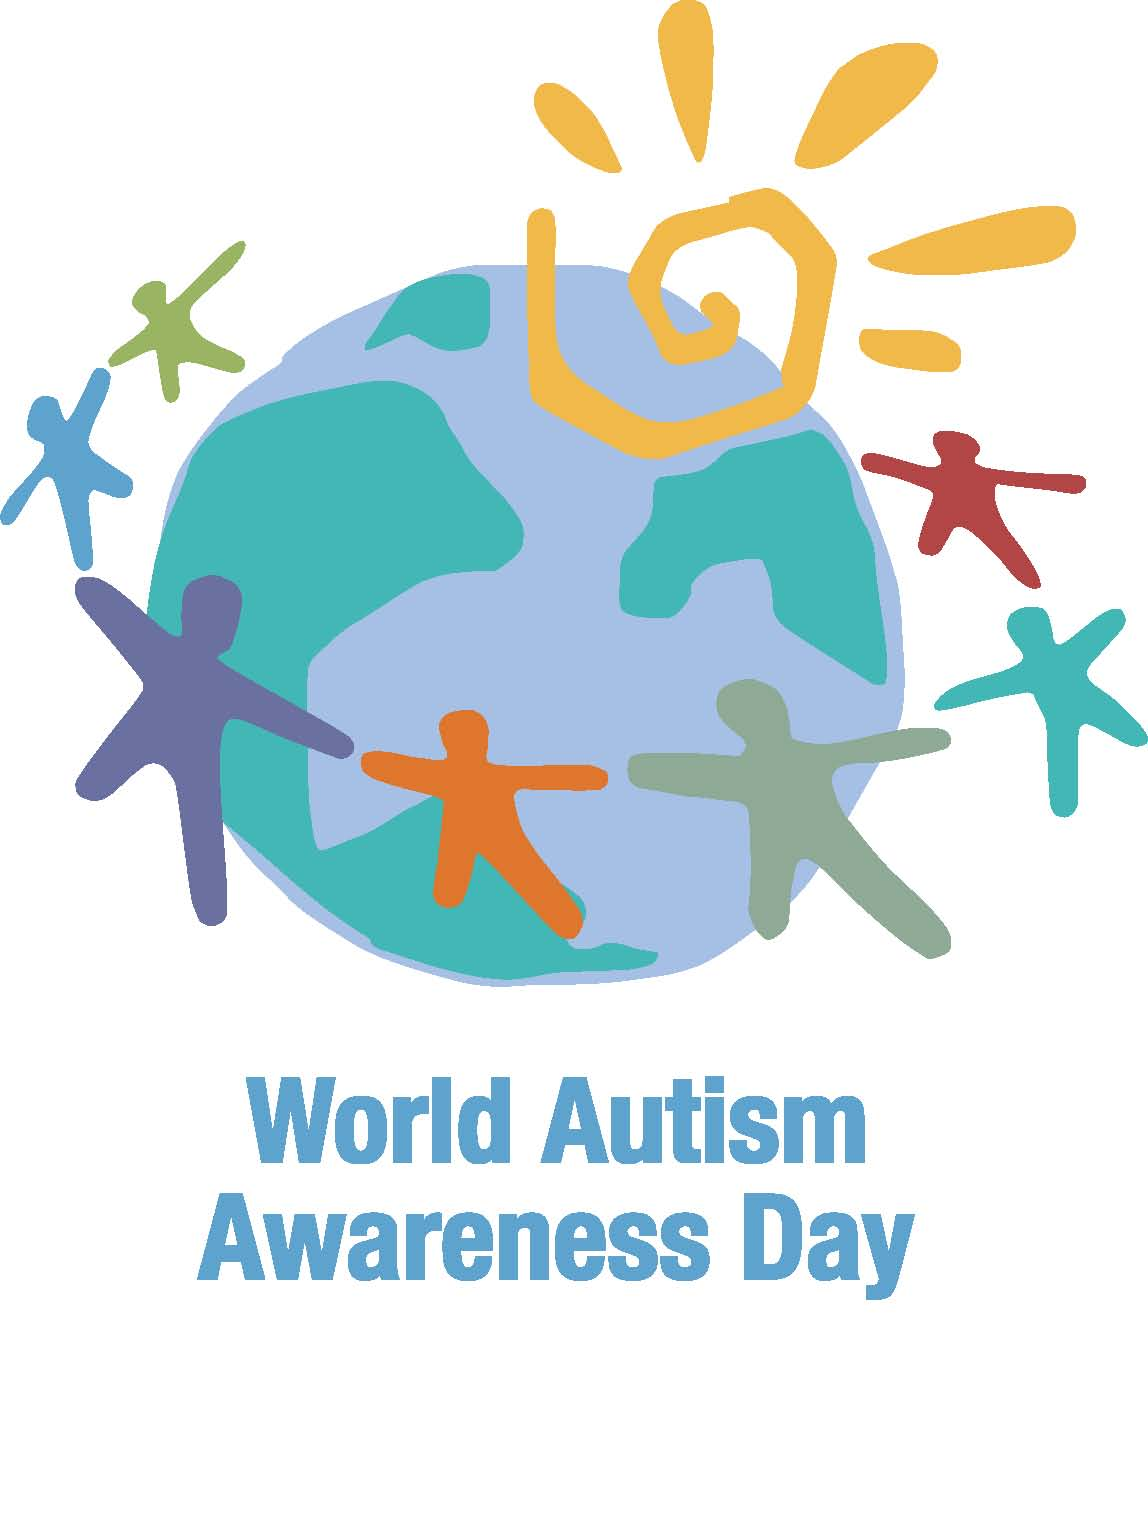 World Autism Awareness Day and - 57.5KB